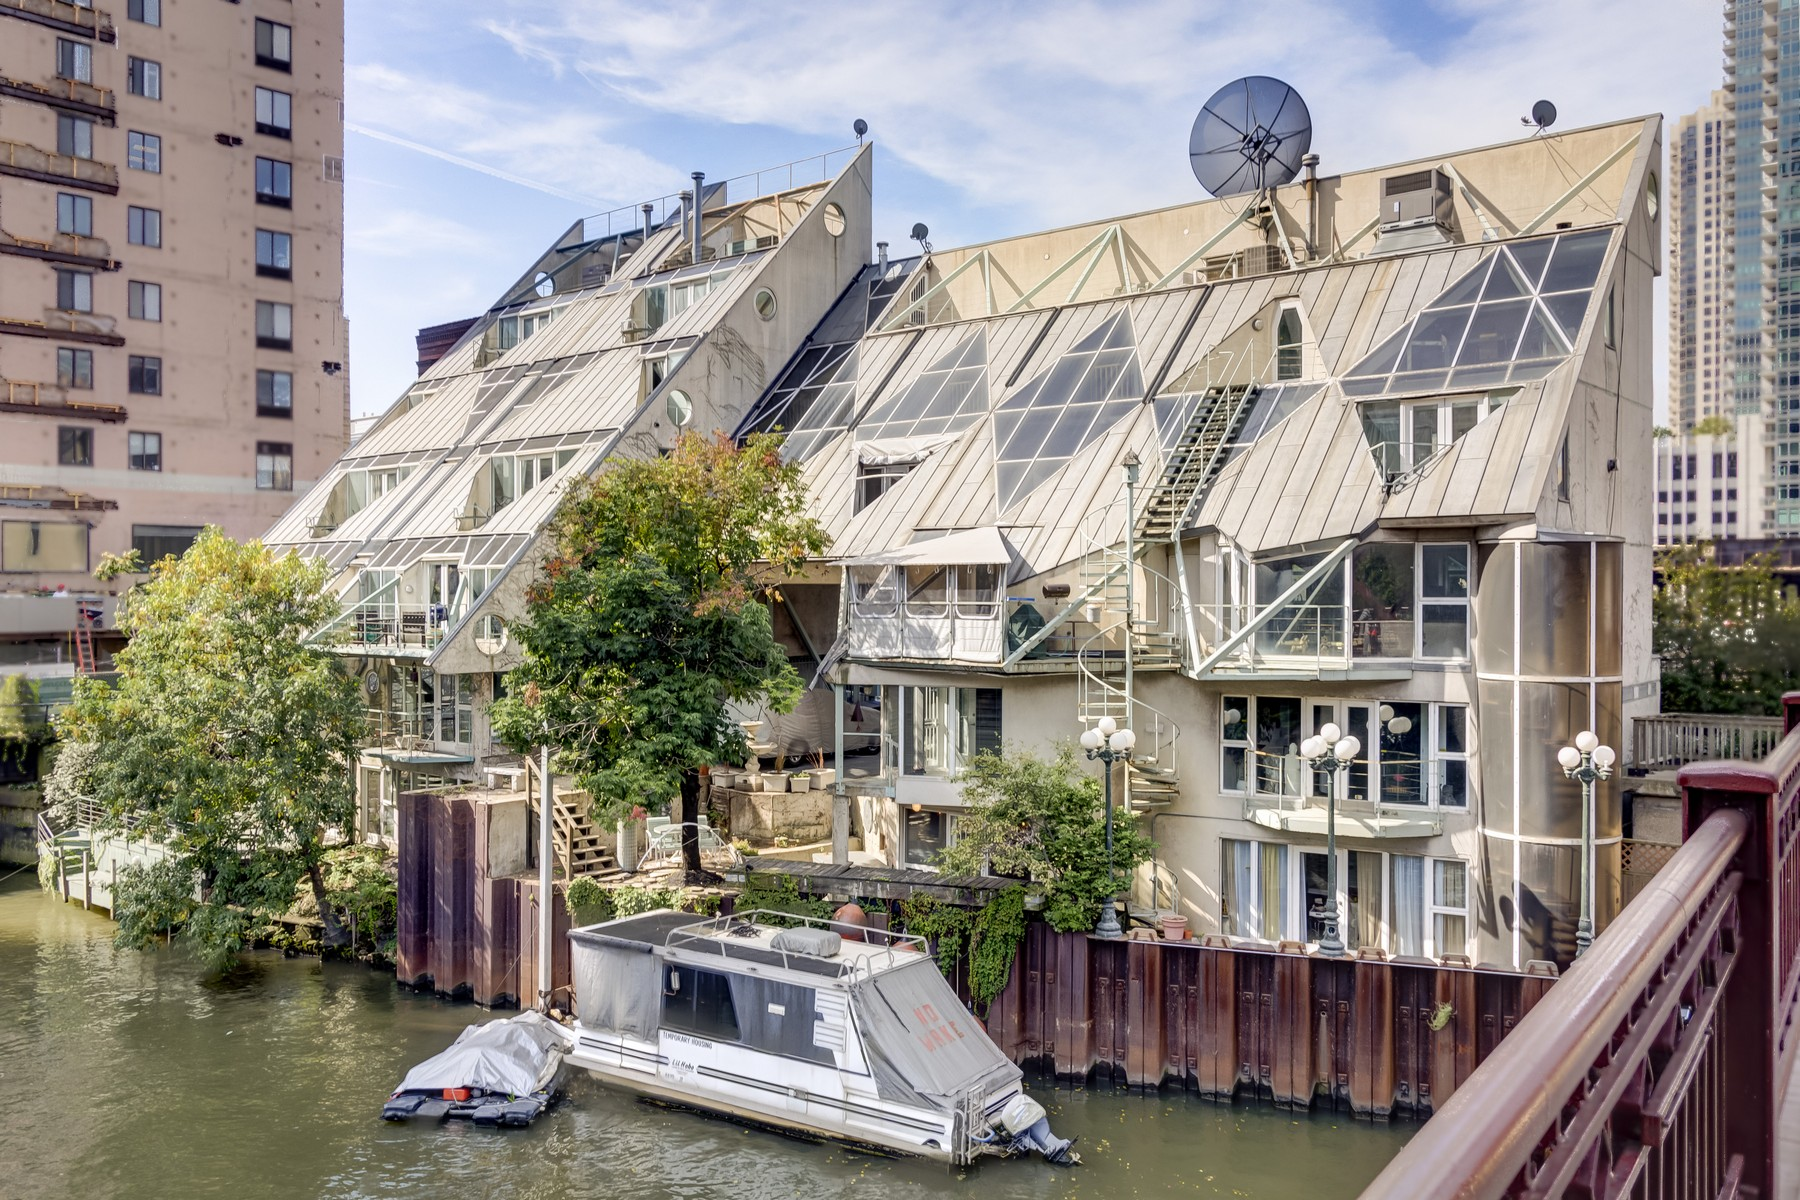 Townhouse for Sale at Harry Weese River Cottage 365 N Canal Street Near North Side, Chicago, Illinois 60606 United States